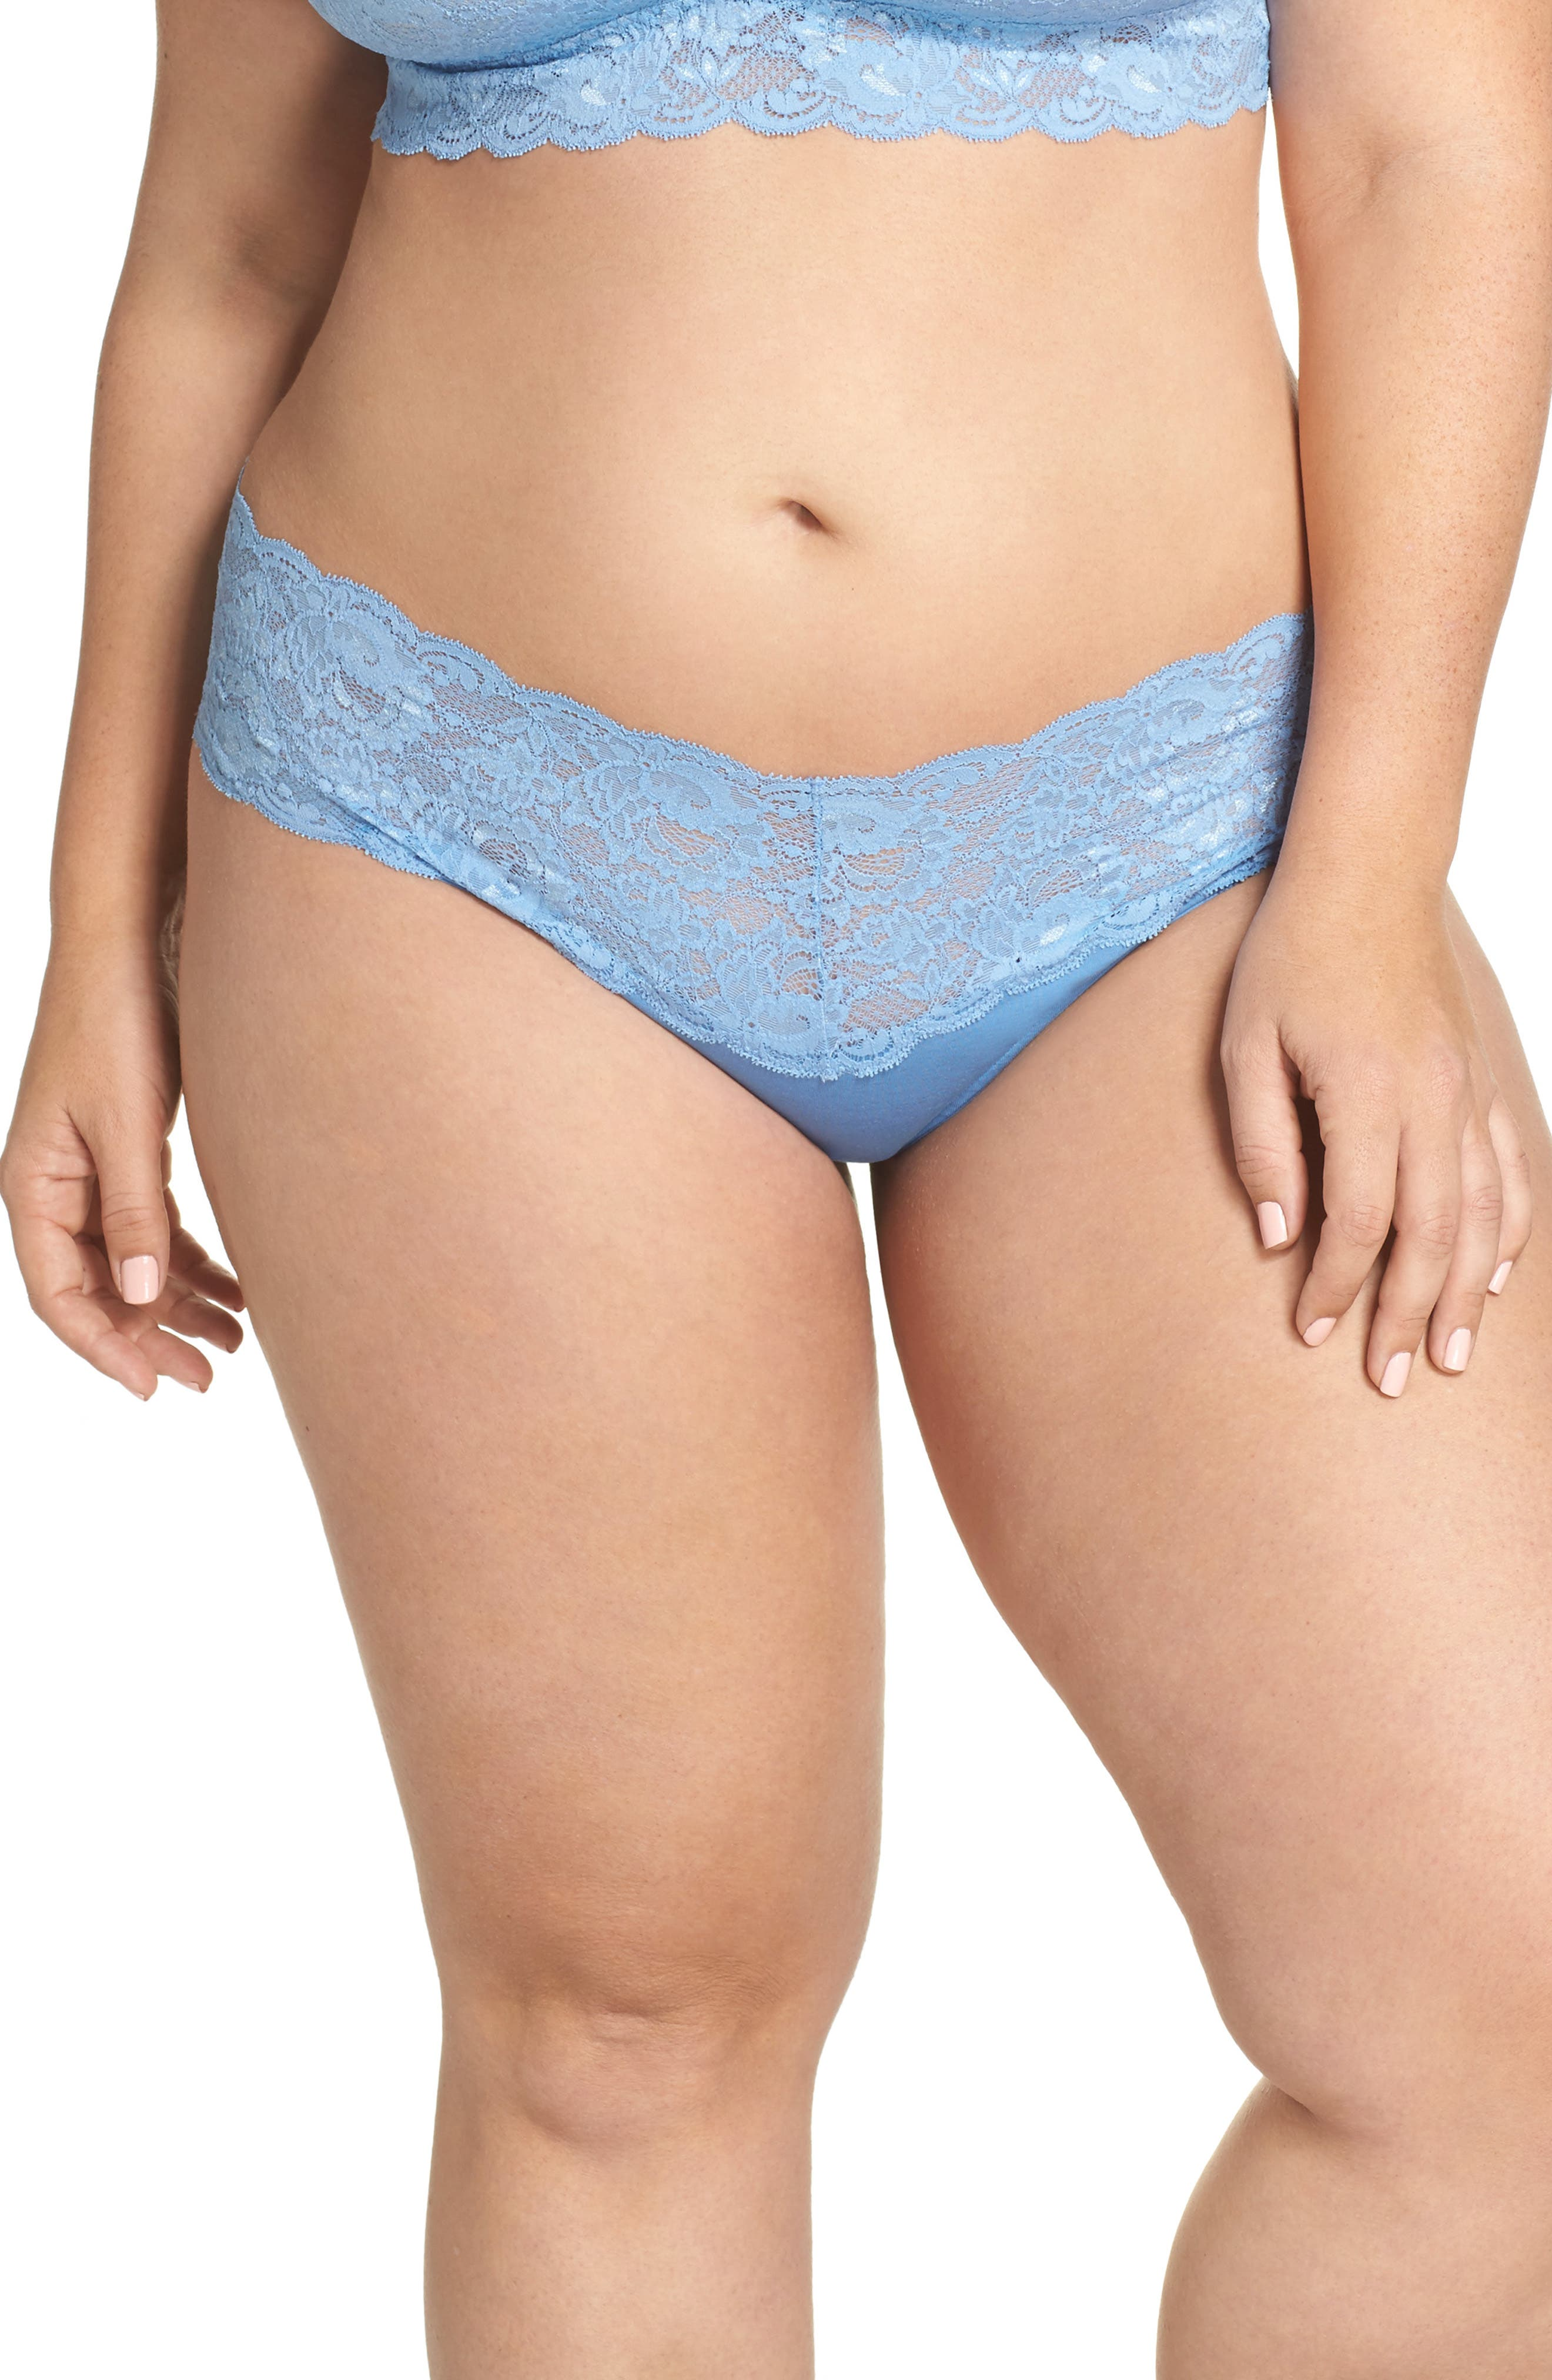 'Never Say Never Lovely' Thong,                             Main thumbnail 1, color,                             Jewel Blue